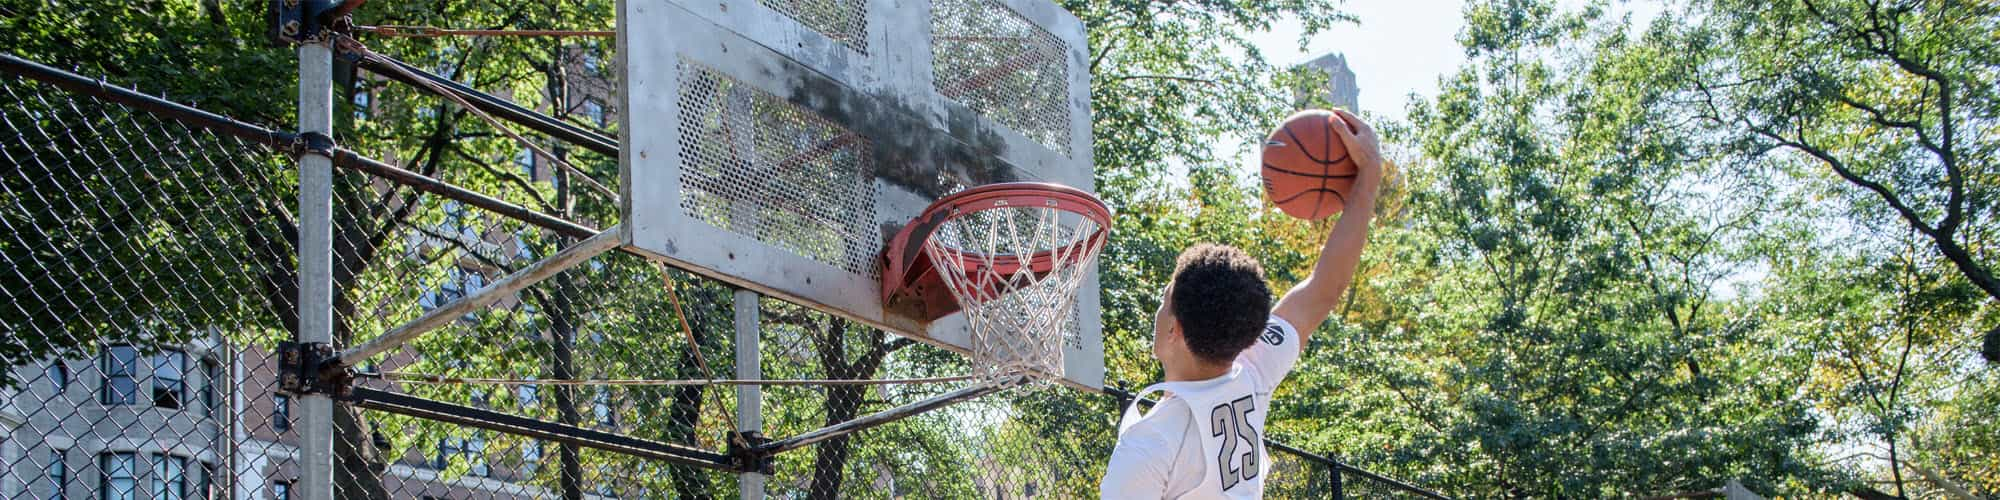 Basketball Hoop Height For 12 Year Old